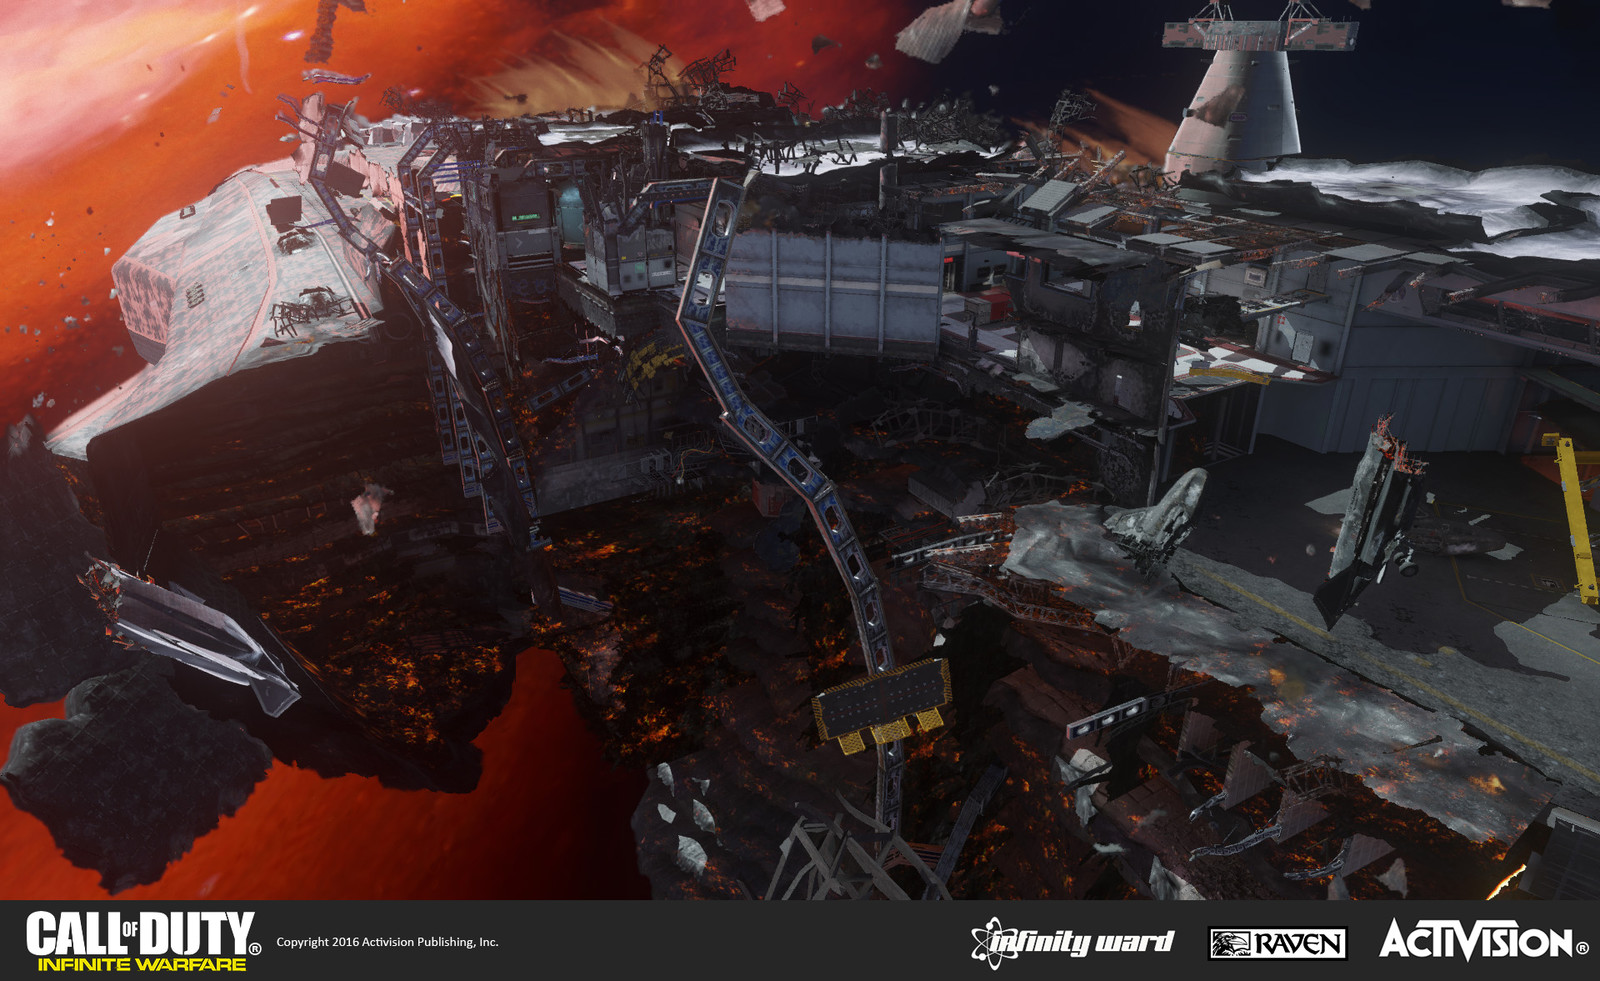 Mayday multiplayer map: This playspace occurs on deck of a heavily damaged ship that is being pulled into a black hole. My responsibility included all geo and material treatment of the damaged decks below the playspace.